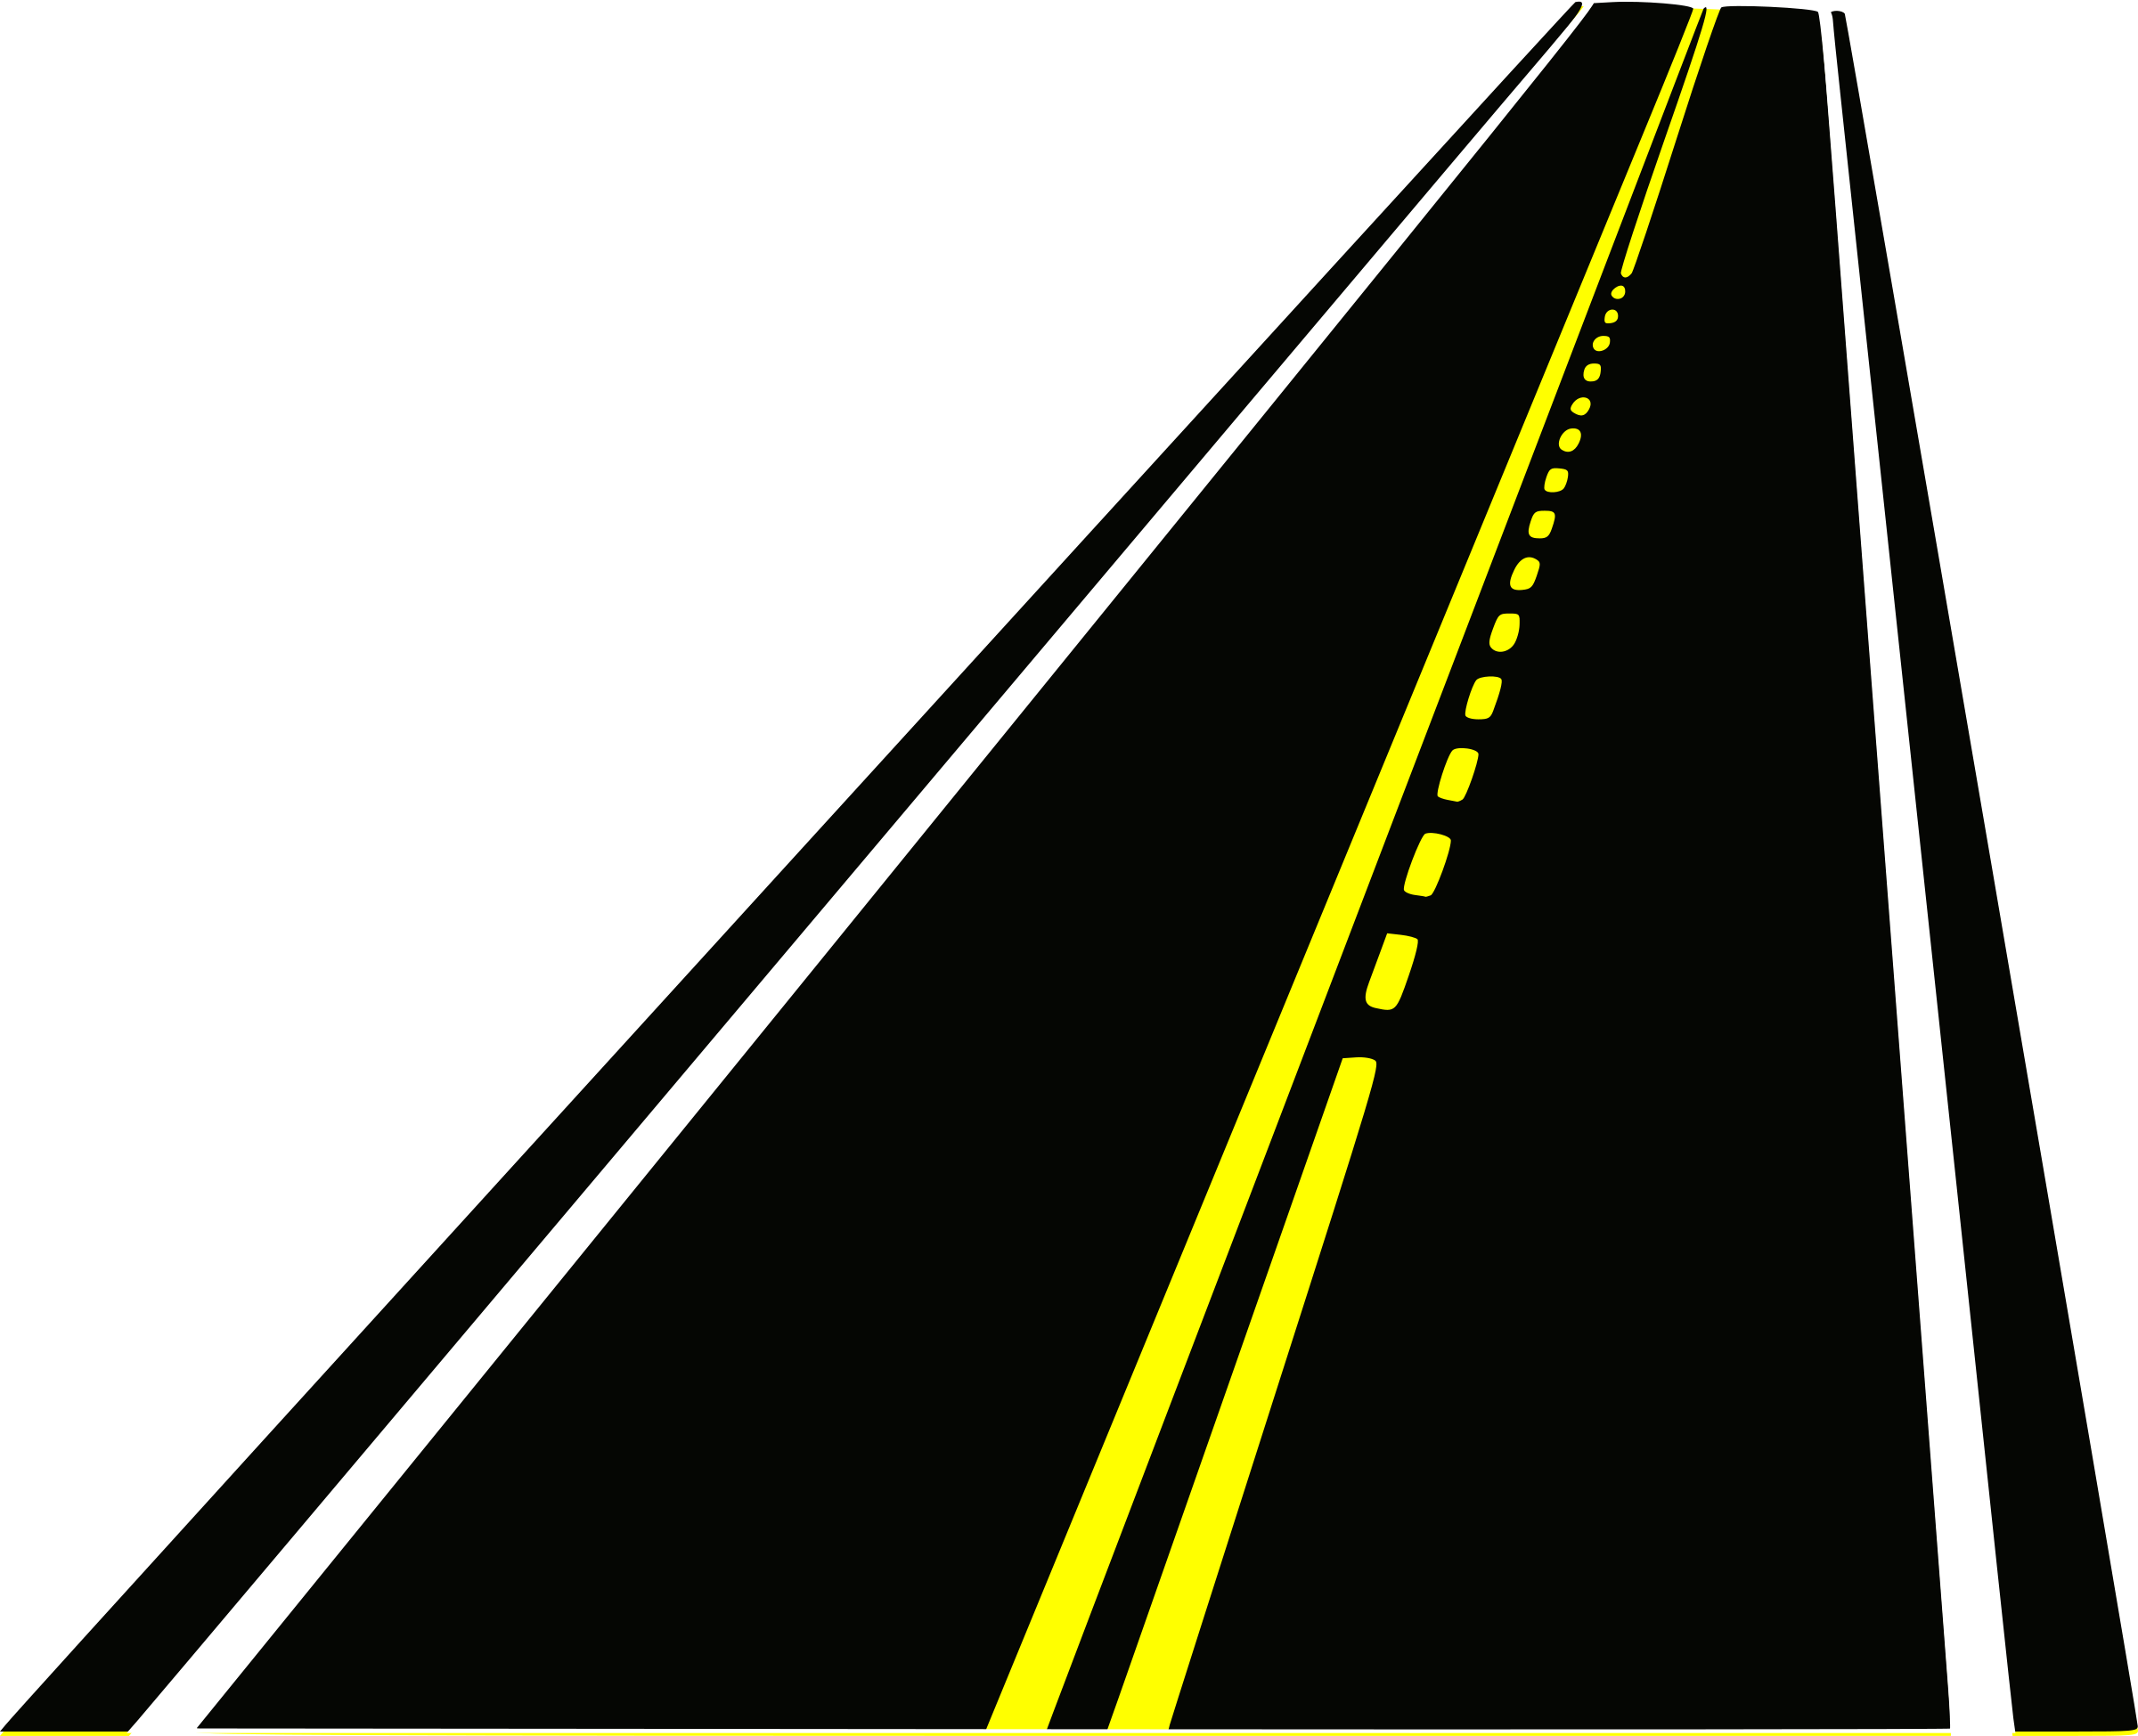 Clip art roadway roads. Background clipart road